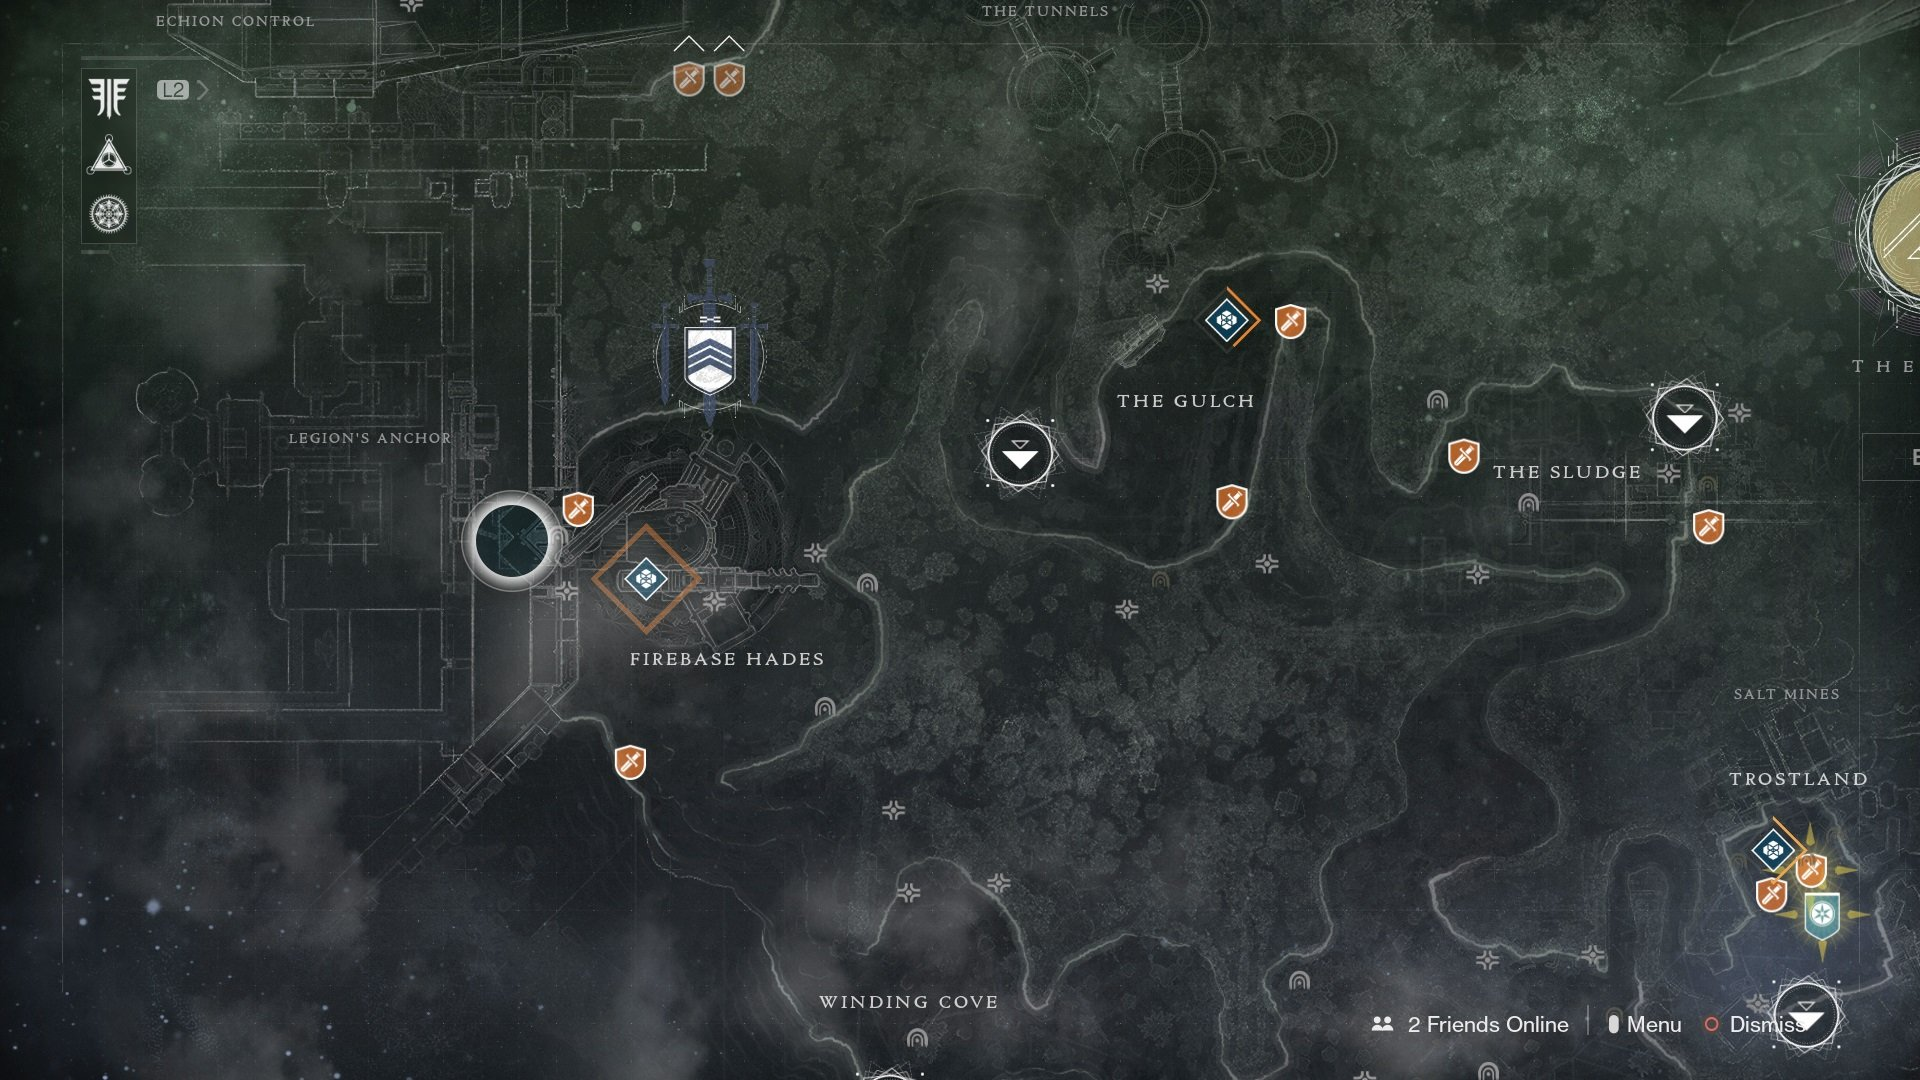 Irxis Partisan can be found in the Gulch area of the EDZ in Destiny 2.